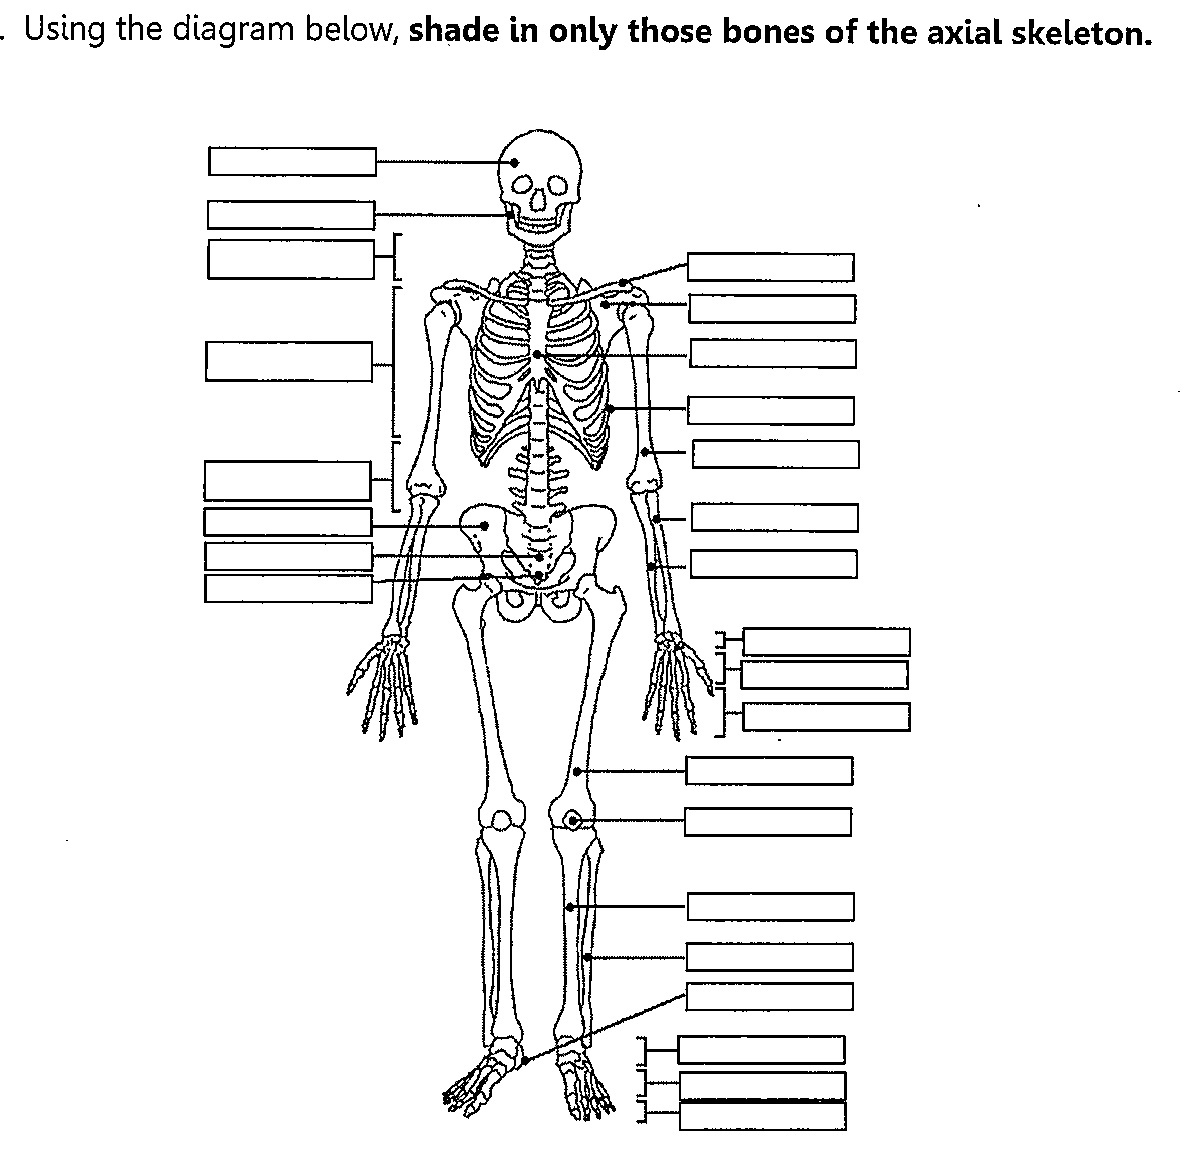 Worksheets Axial Skeleton Worksheet axial skeleton worksheet fill in the blank yahoo image search results